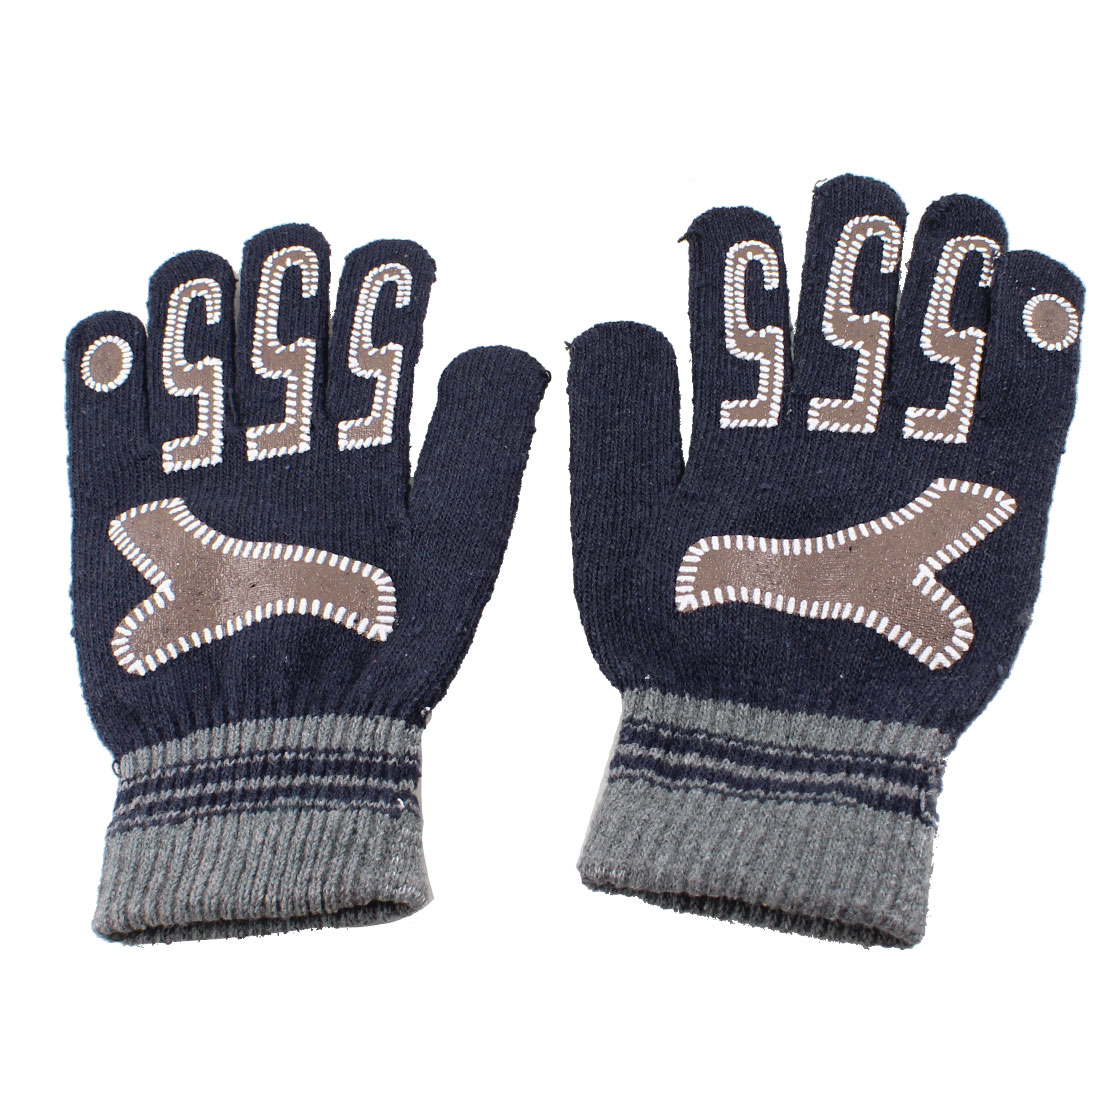 Men Women Pair Arabic Number 5 Pattern Full Fingers Winter Gloves Dark Blue